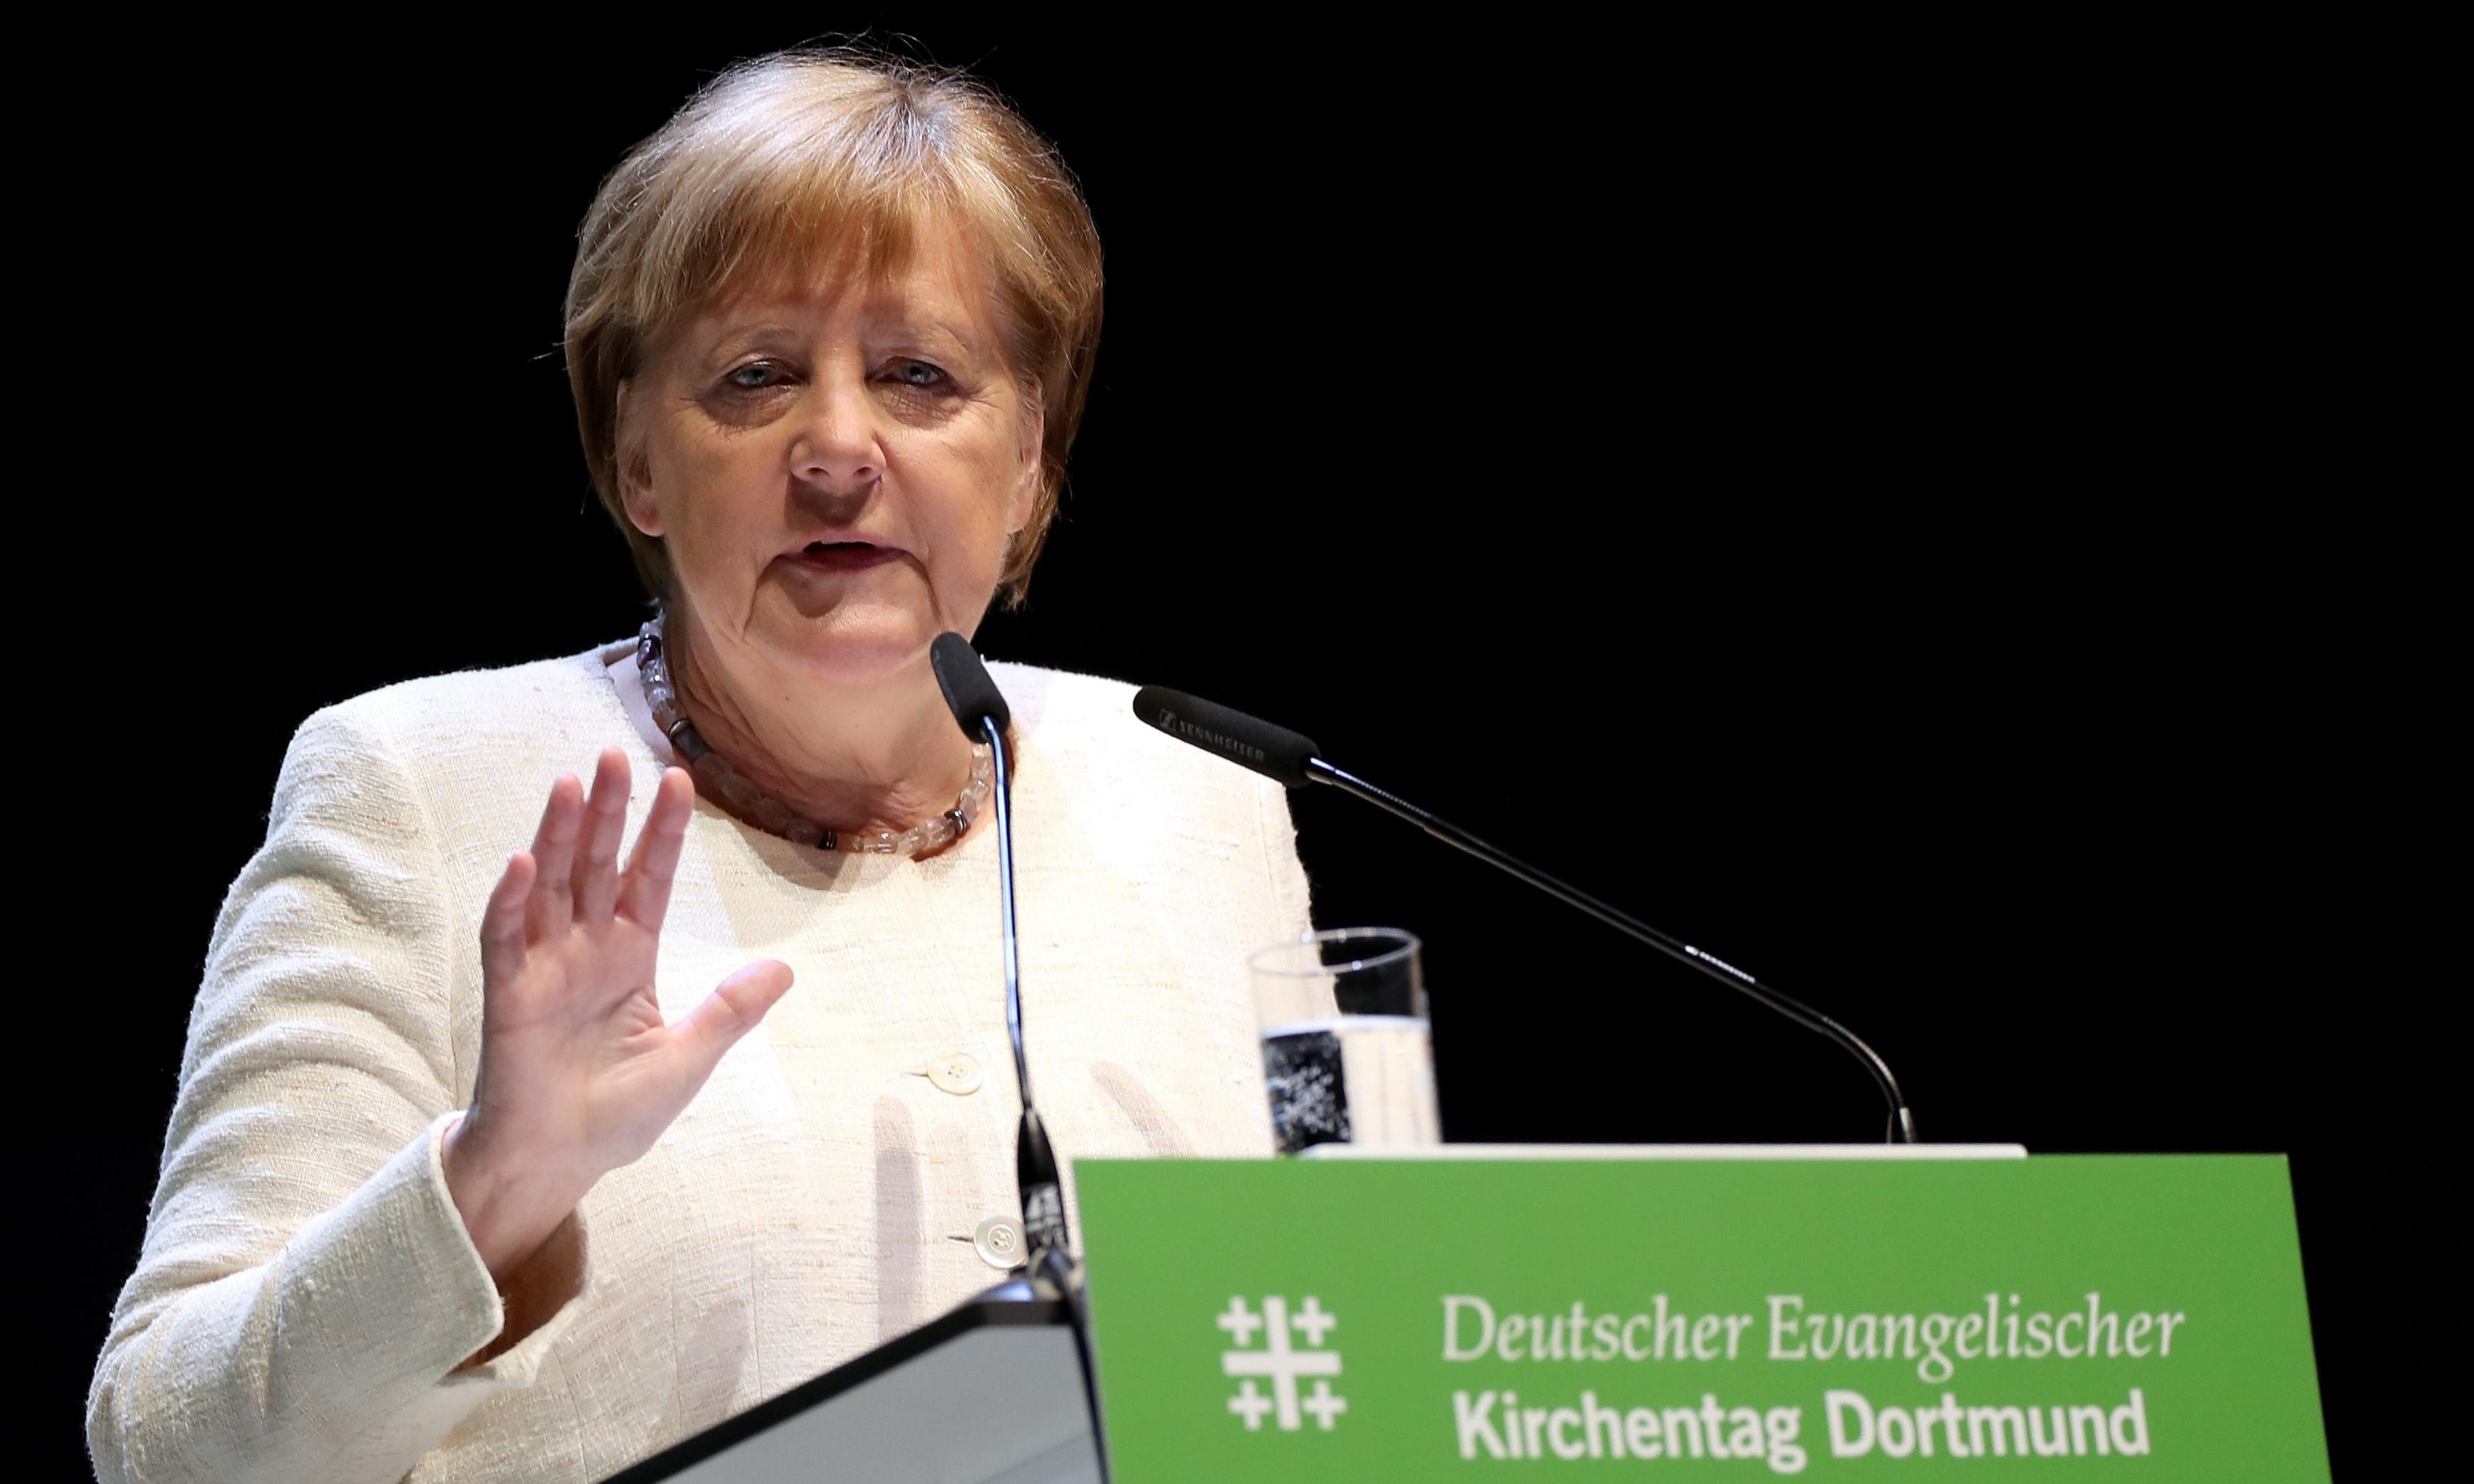 Merkel: rightwing extremism must be fought 'without any taboo'